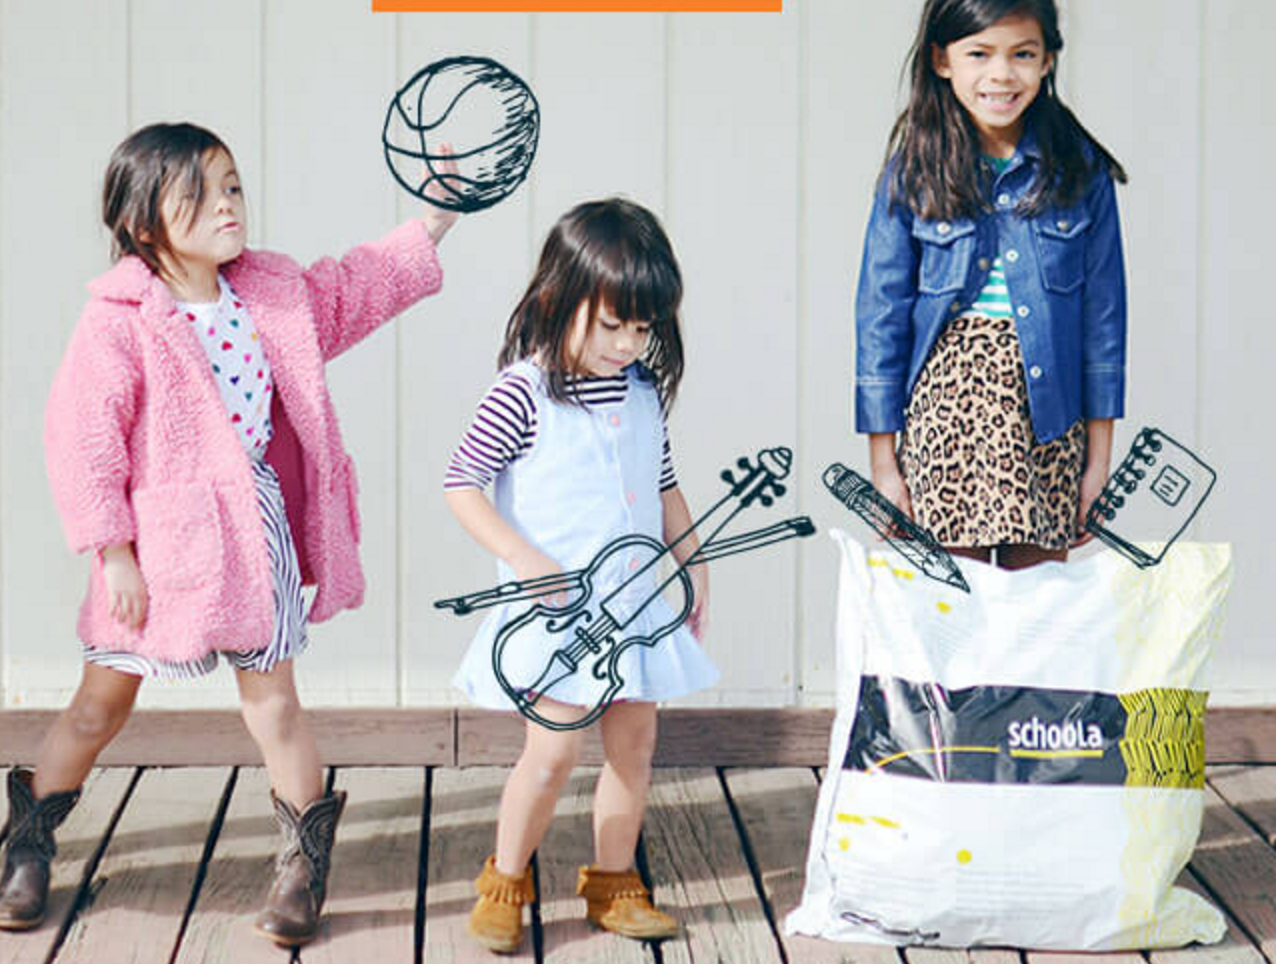 Incredible Deal on Clothing at Schoola: $20 Credit, 50% off, FREE Shipping